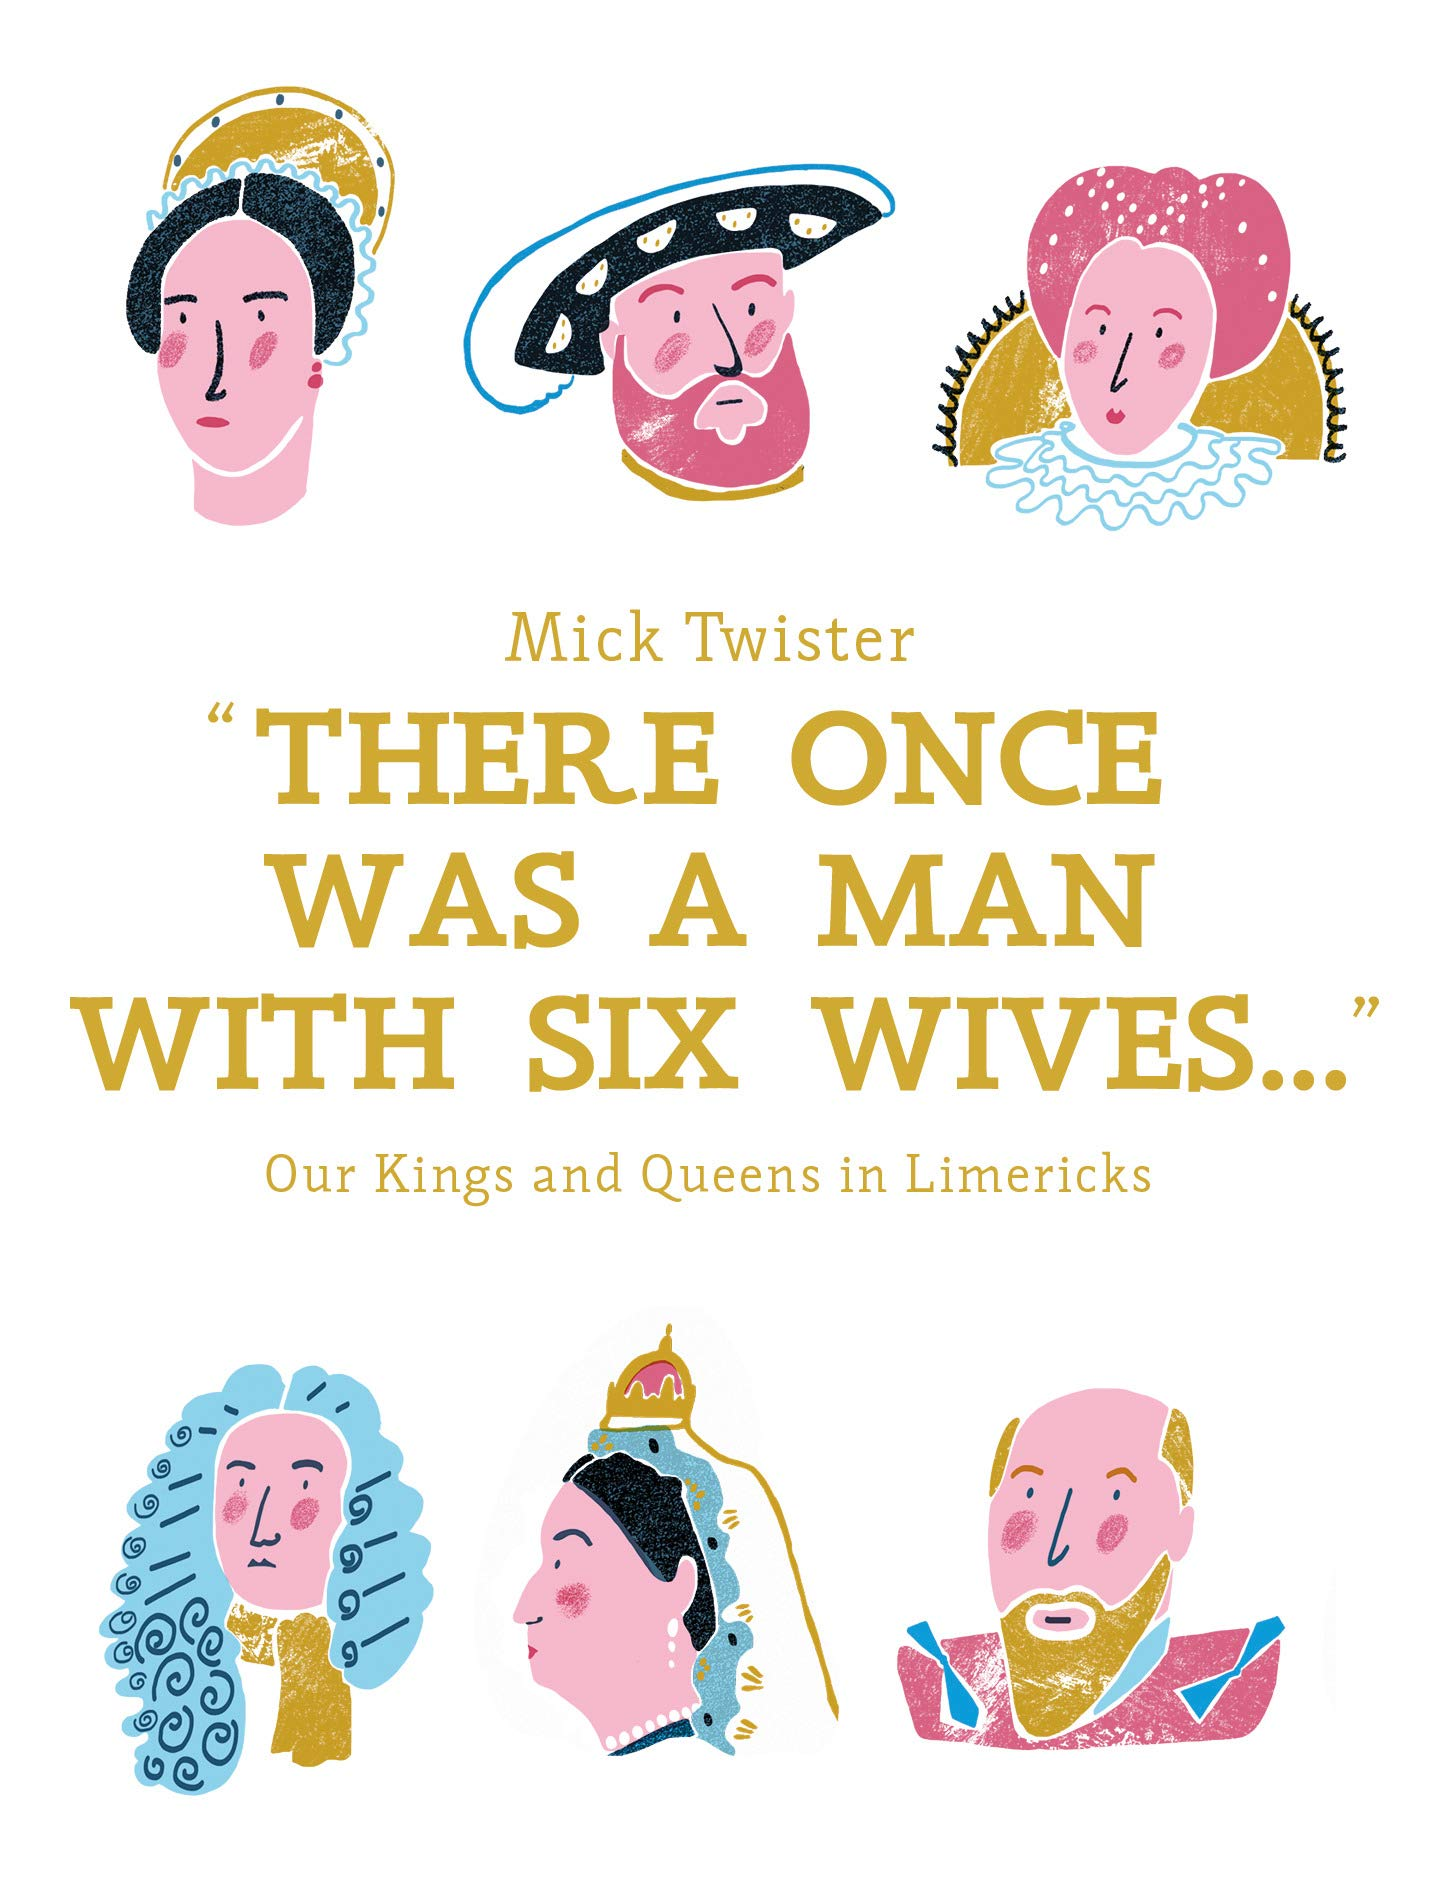 There Once Was A Man With Six Wives  Our Kings And Queens In Limericks